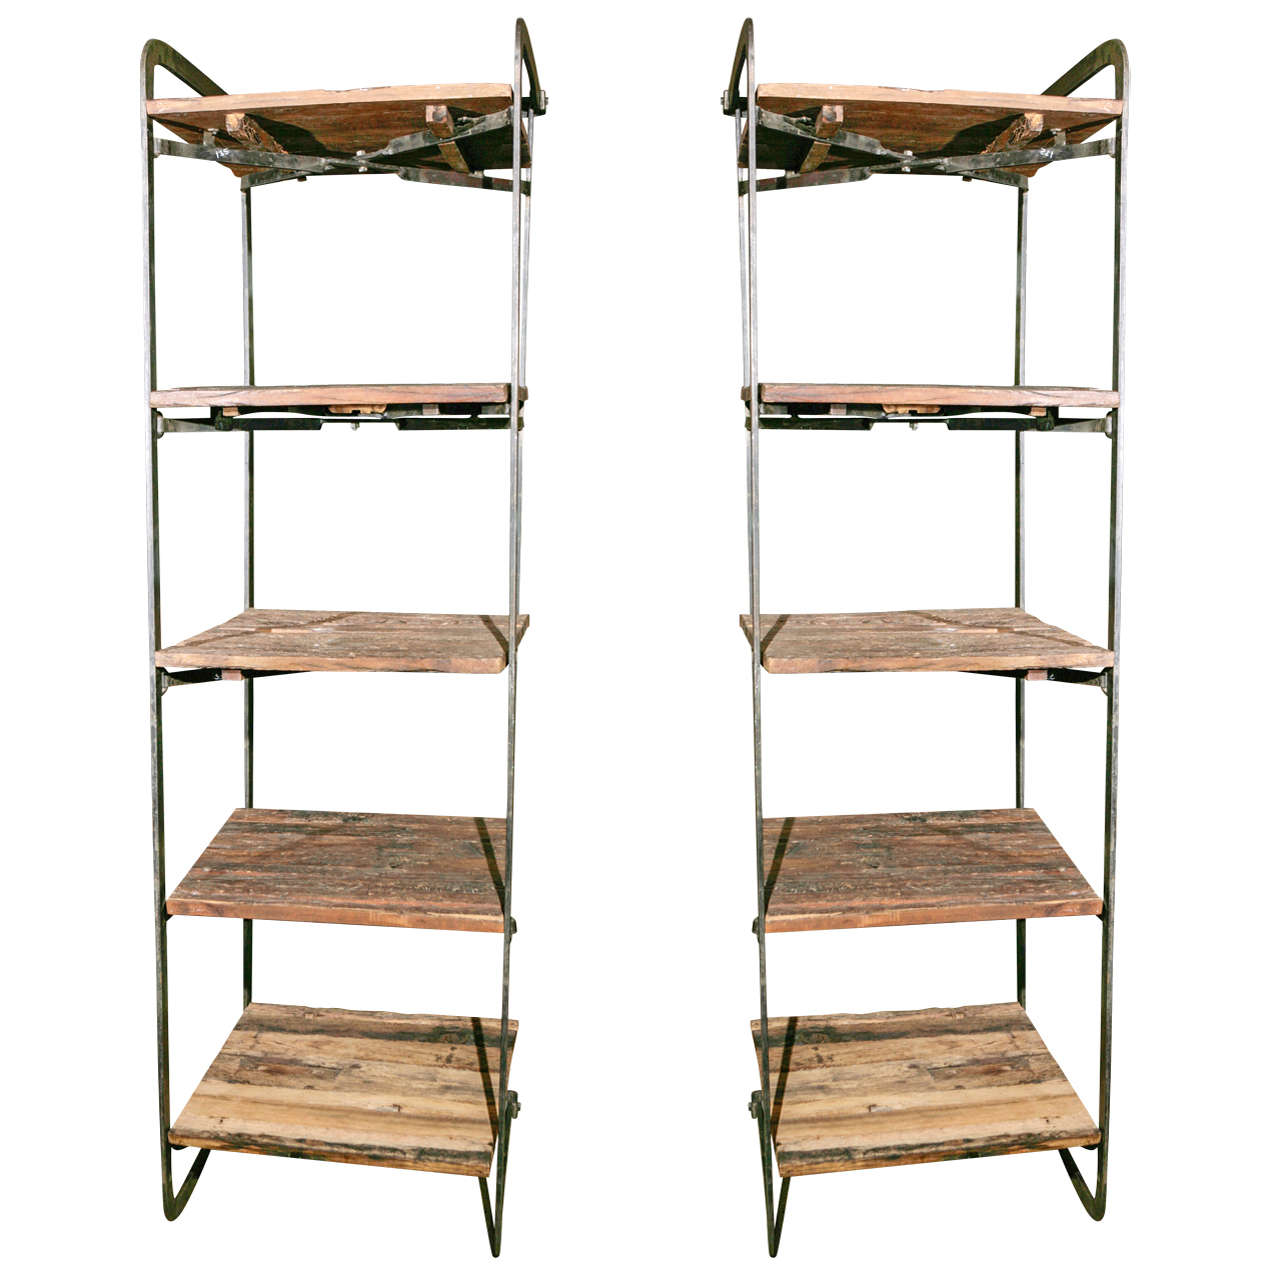 Wonderful image of Pair of Wrought Iron Stands with Hand Hewn Shelves at 1stdibs with #956636 color and 1281x1280 pixels